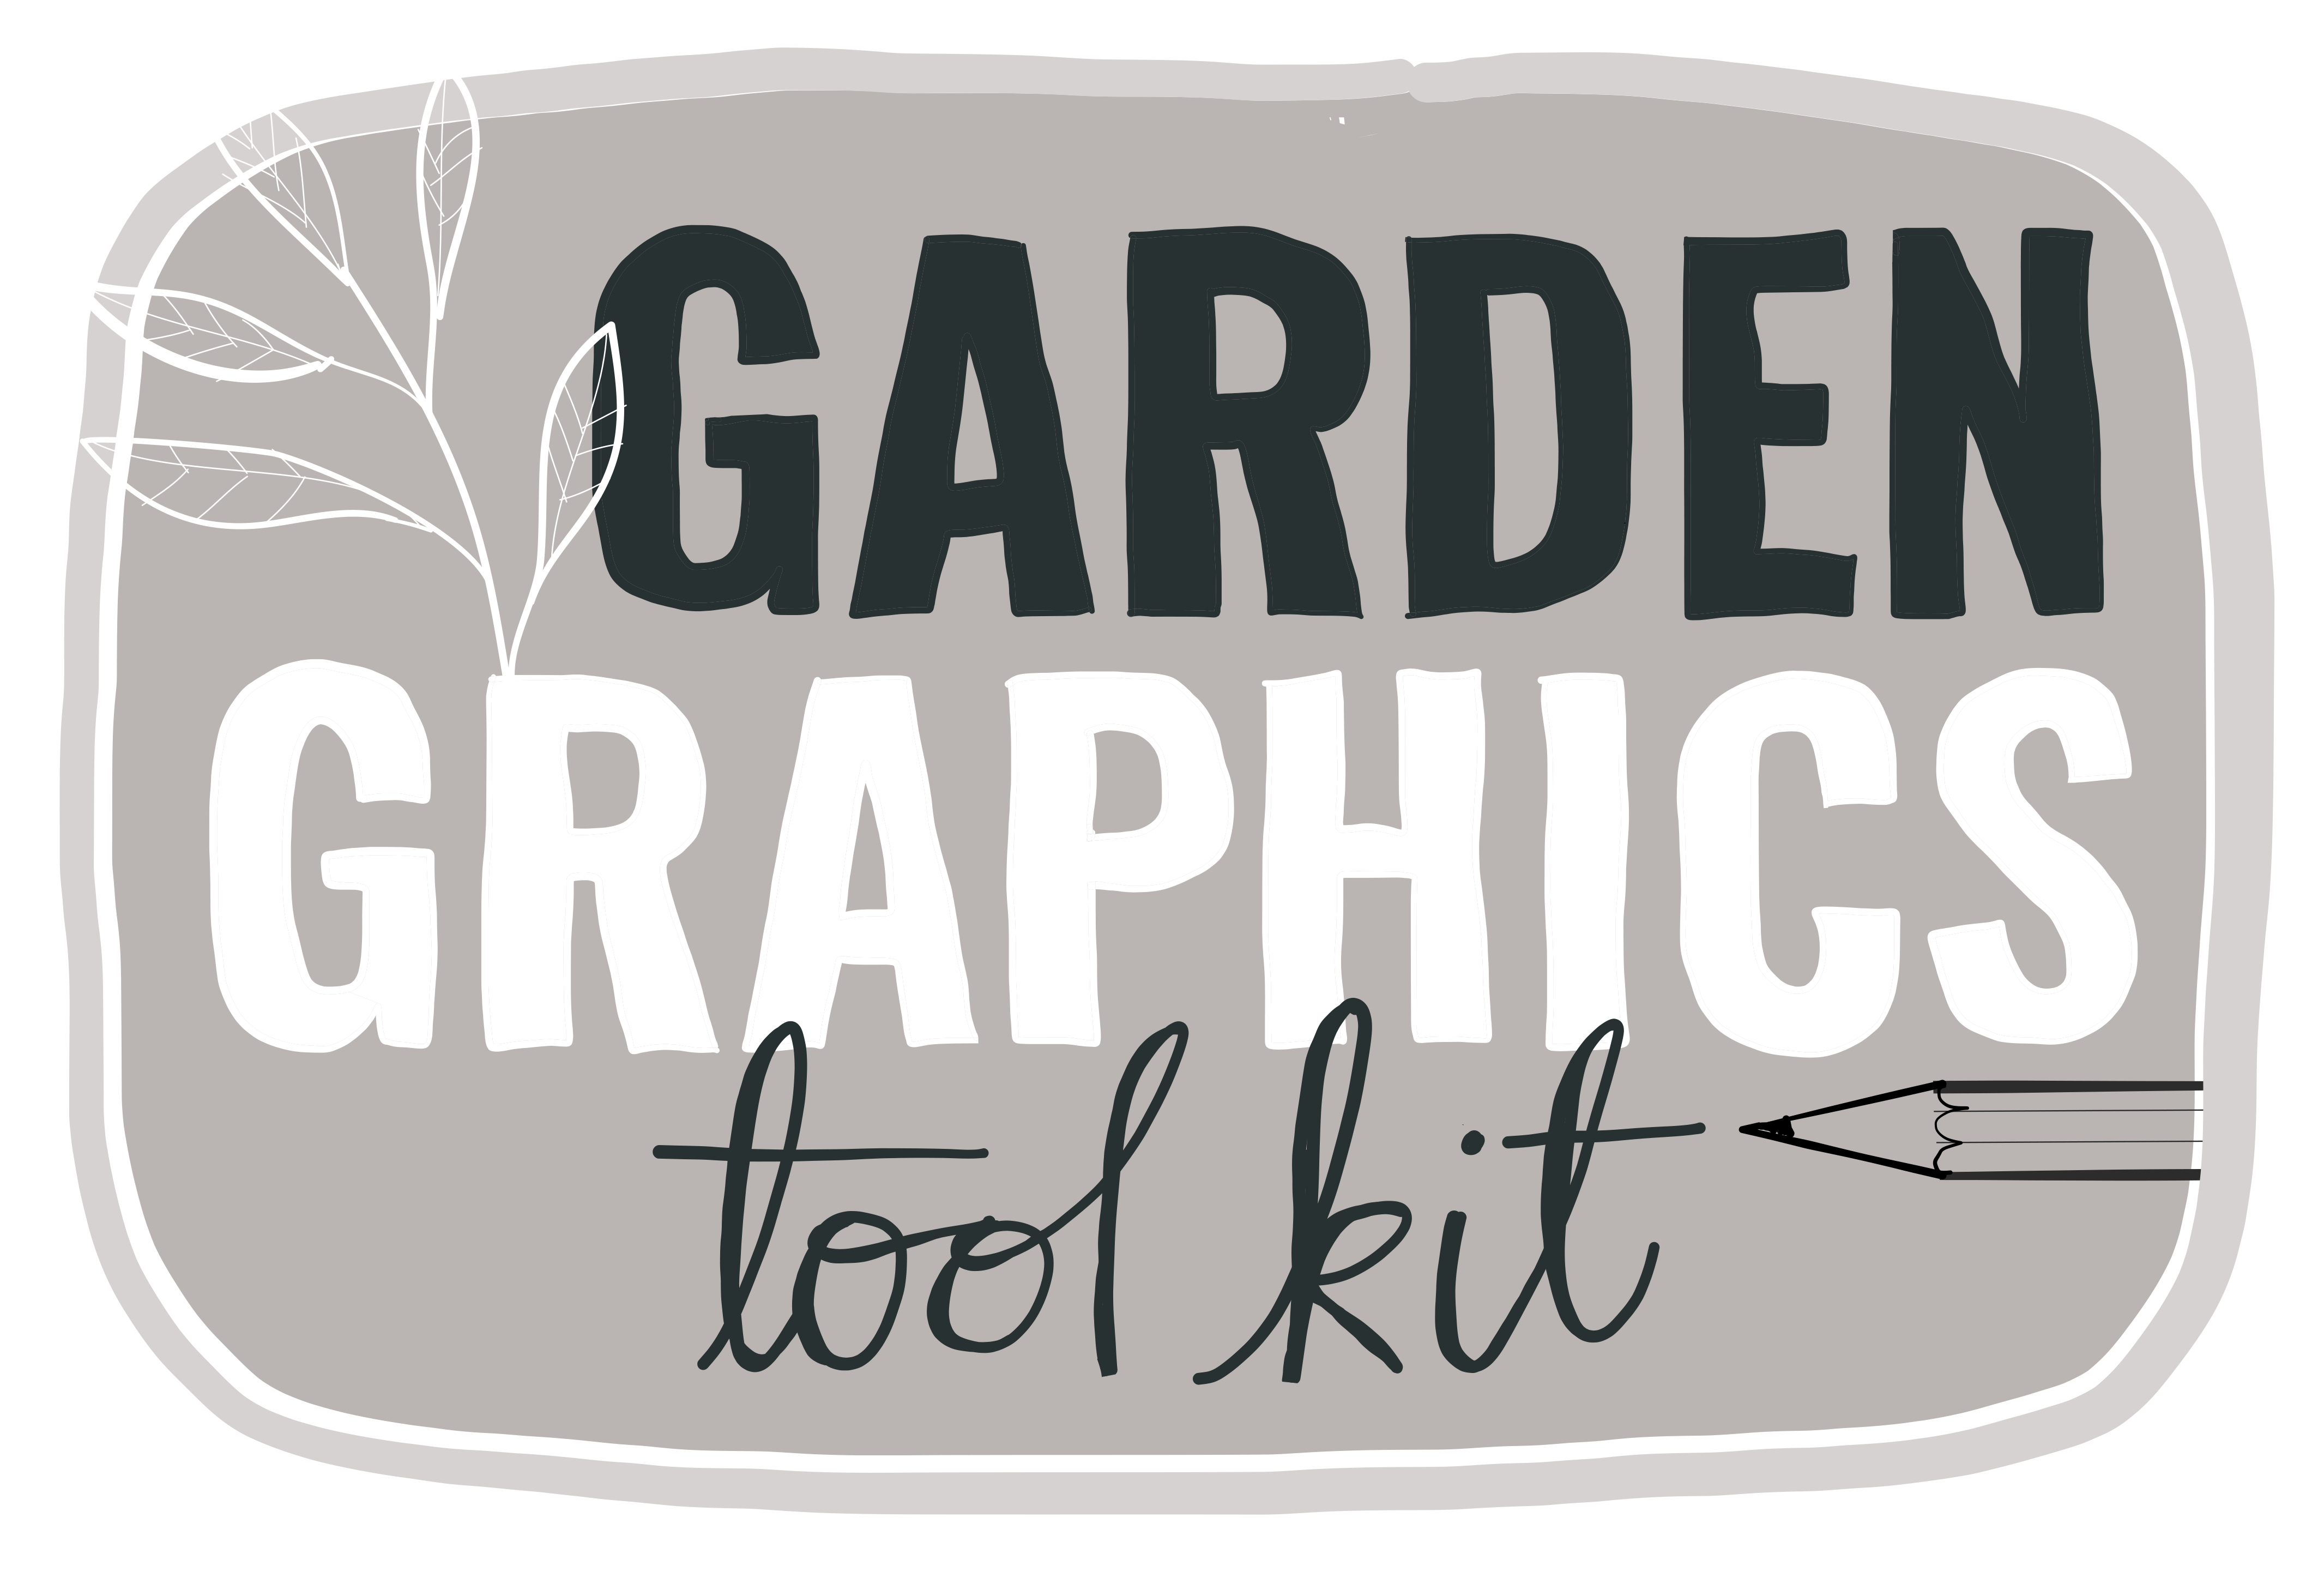 garden graphics tool kit logo